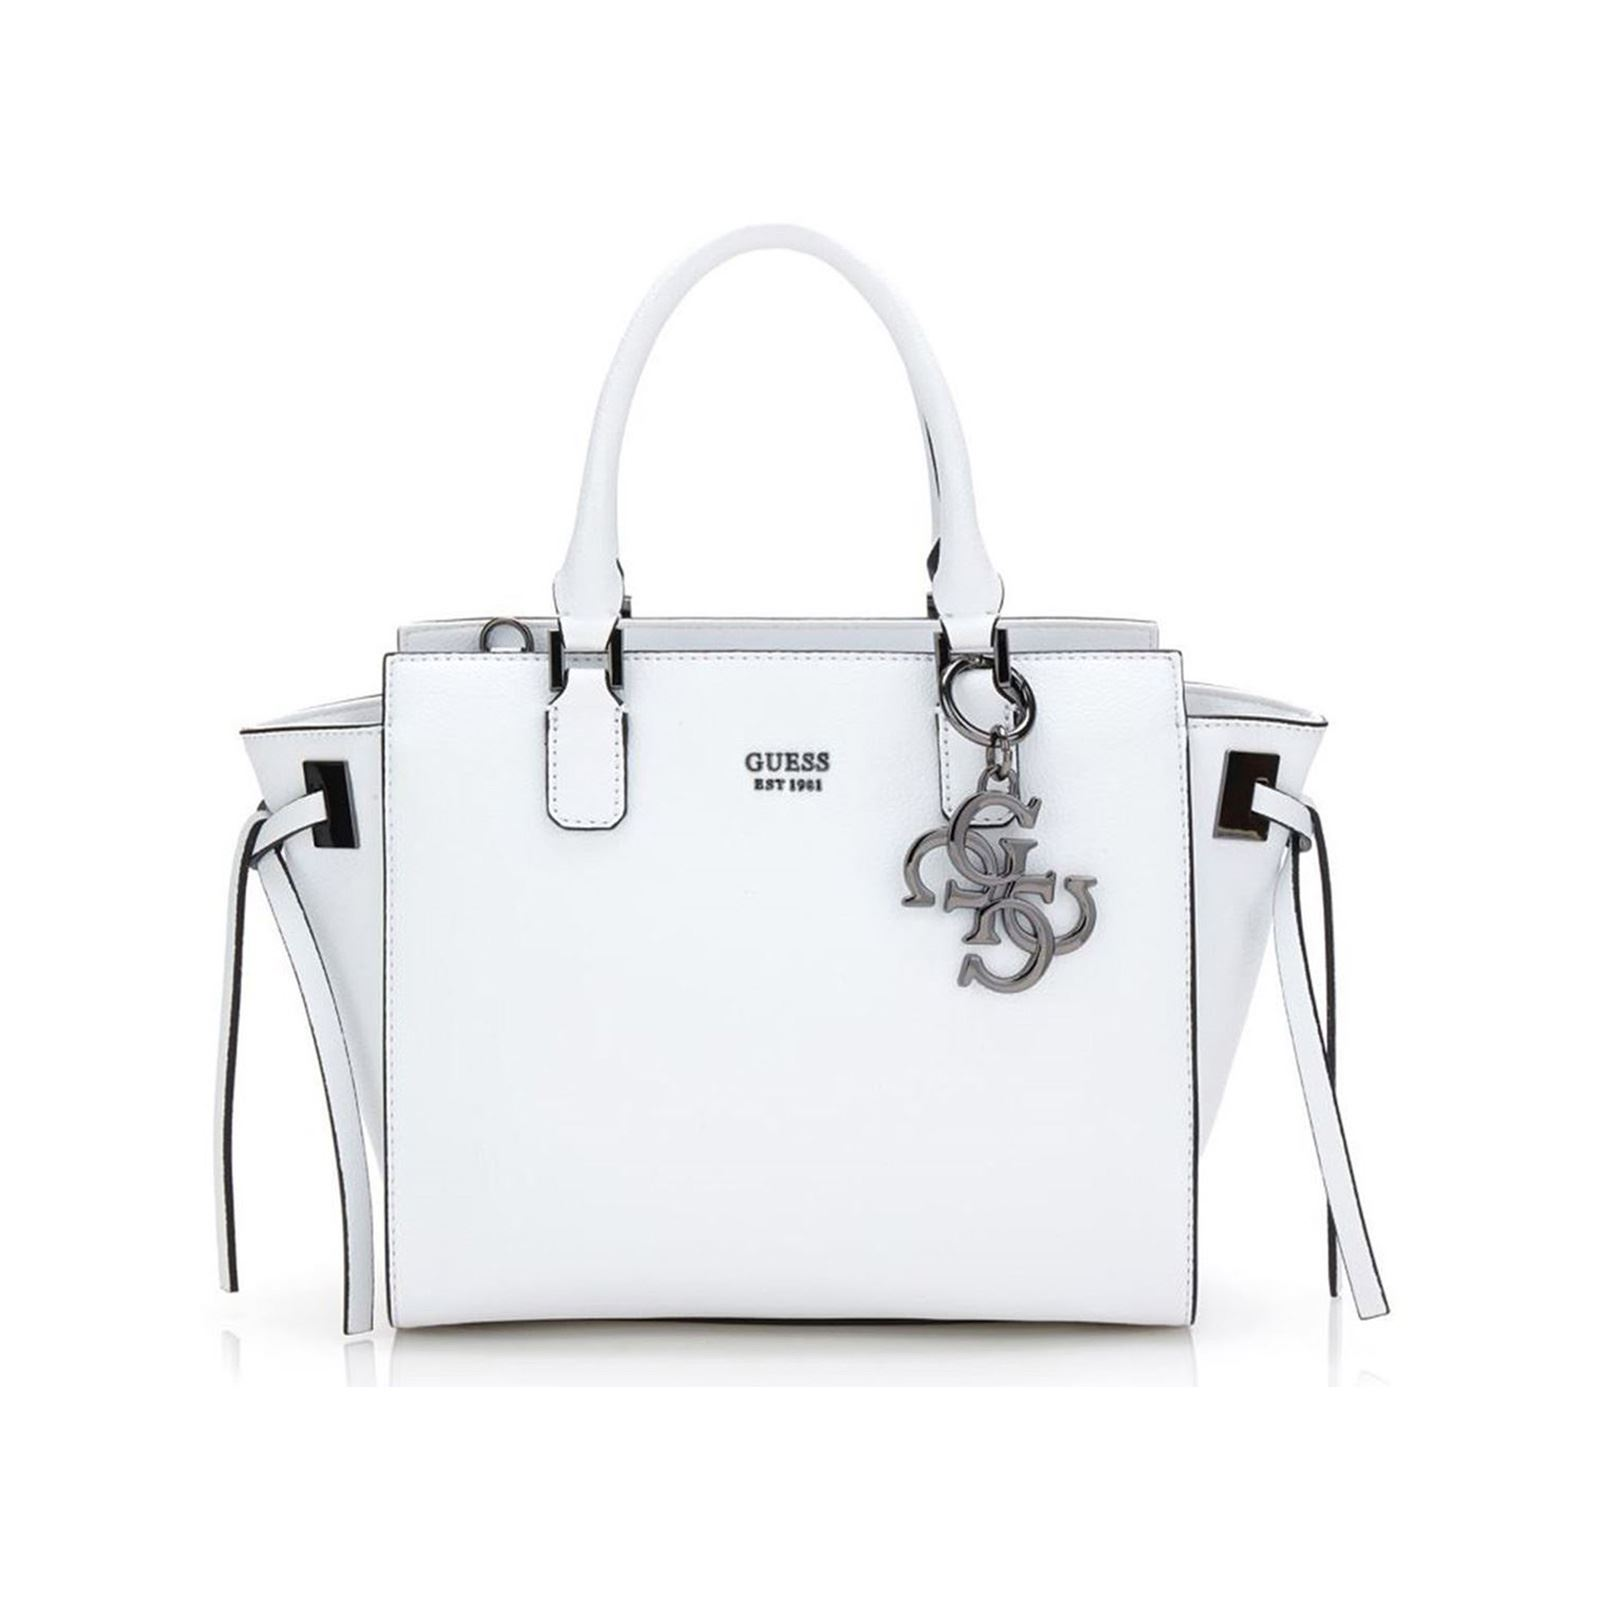 Handbag Off Guess Brandalley Digital White a4xwPqt